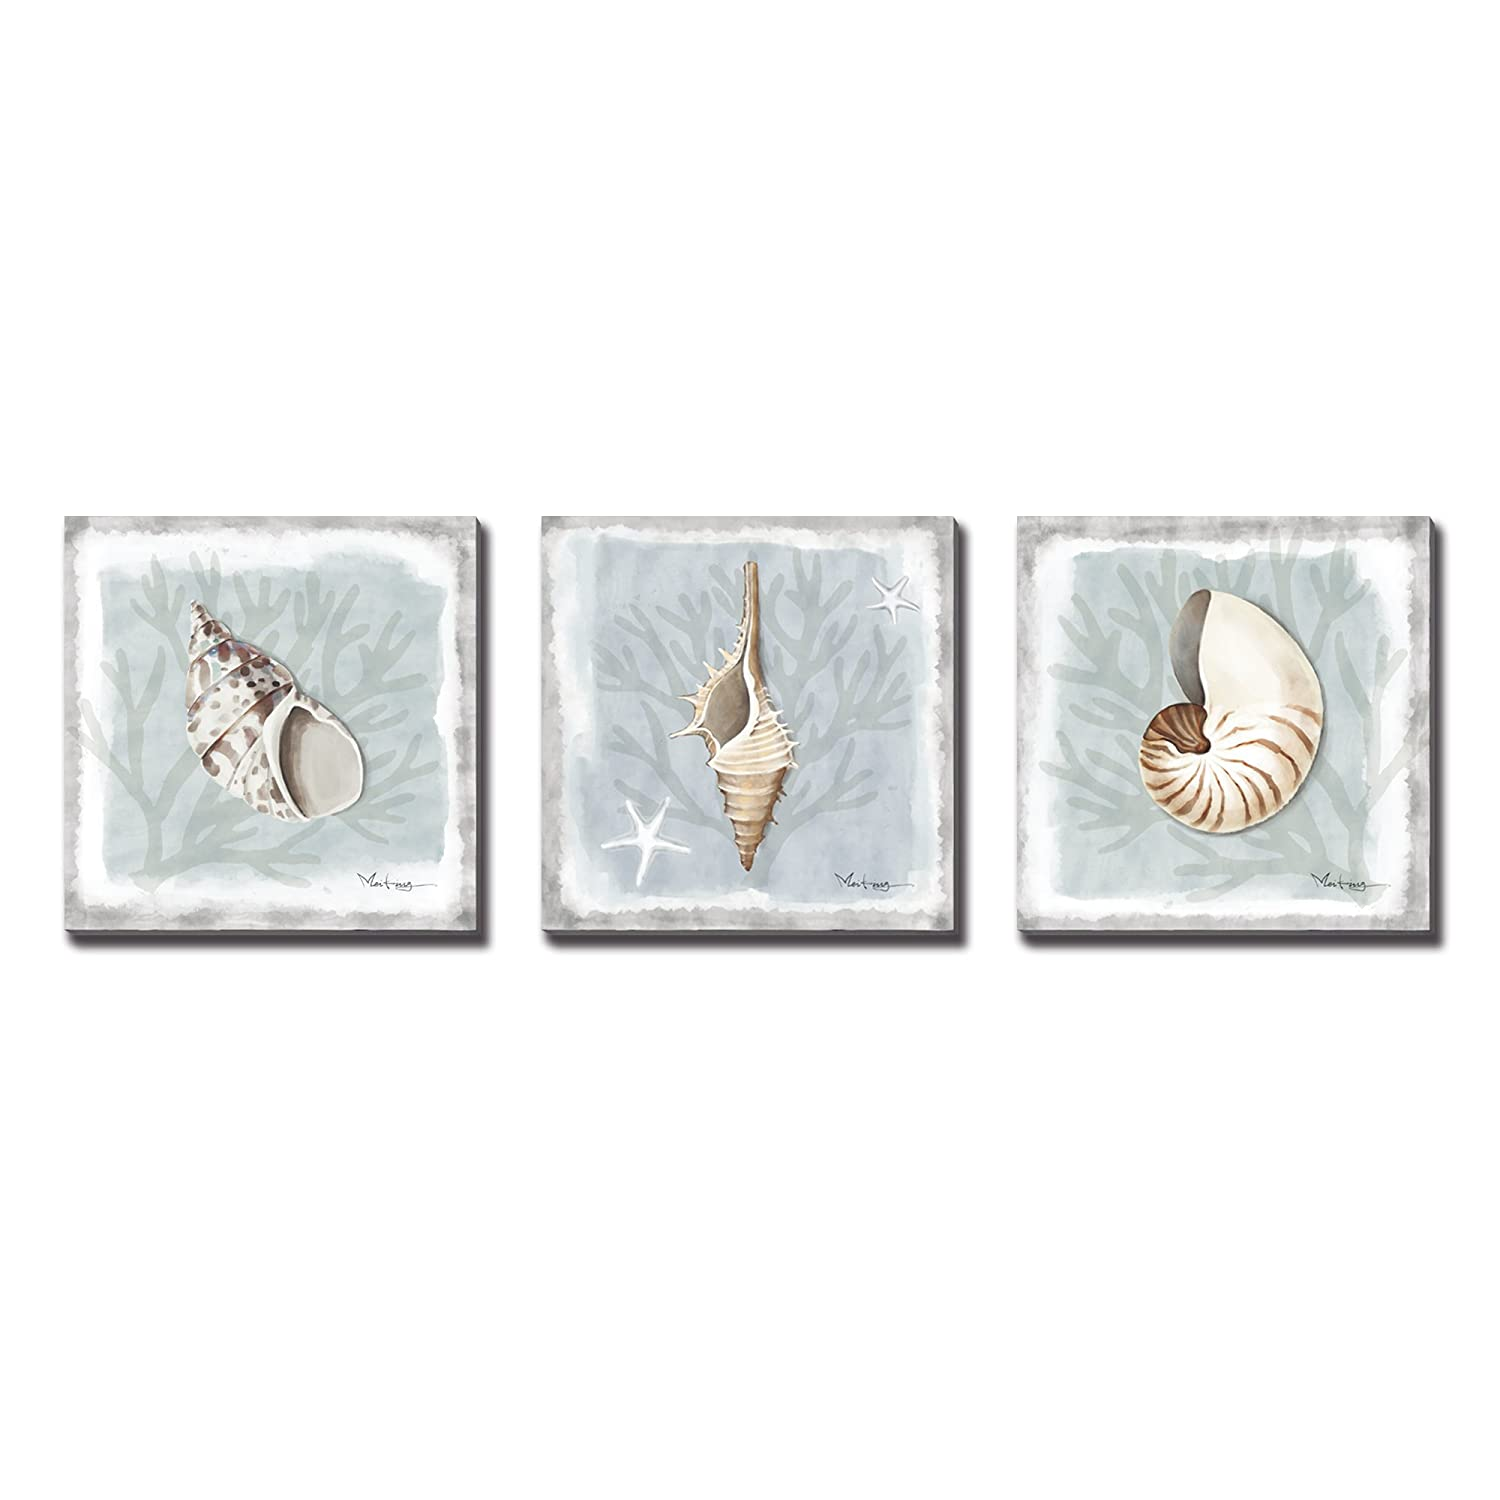 3Hdeko-3 Panels Seashell Decor Mordern Abstract Painting Conch Coastal Artwork Pictures Framed Paintings on Canvas Wall Art for Living Room Bedroom Home Decor 12x12 Inch x3pcs PR-LF-019-1010-GW